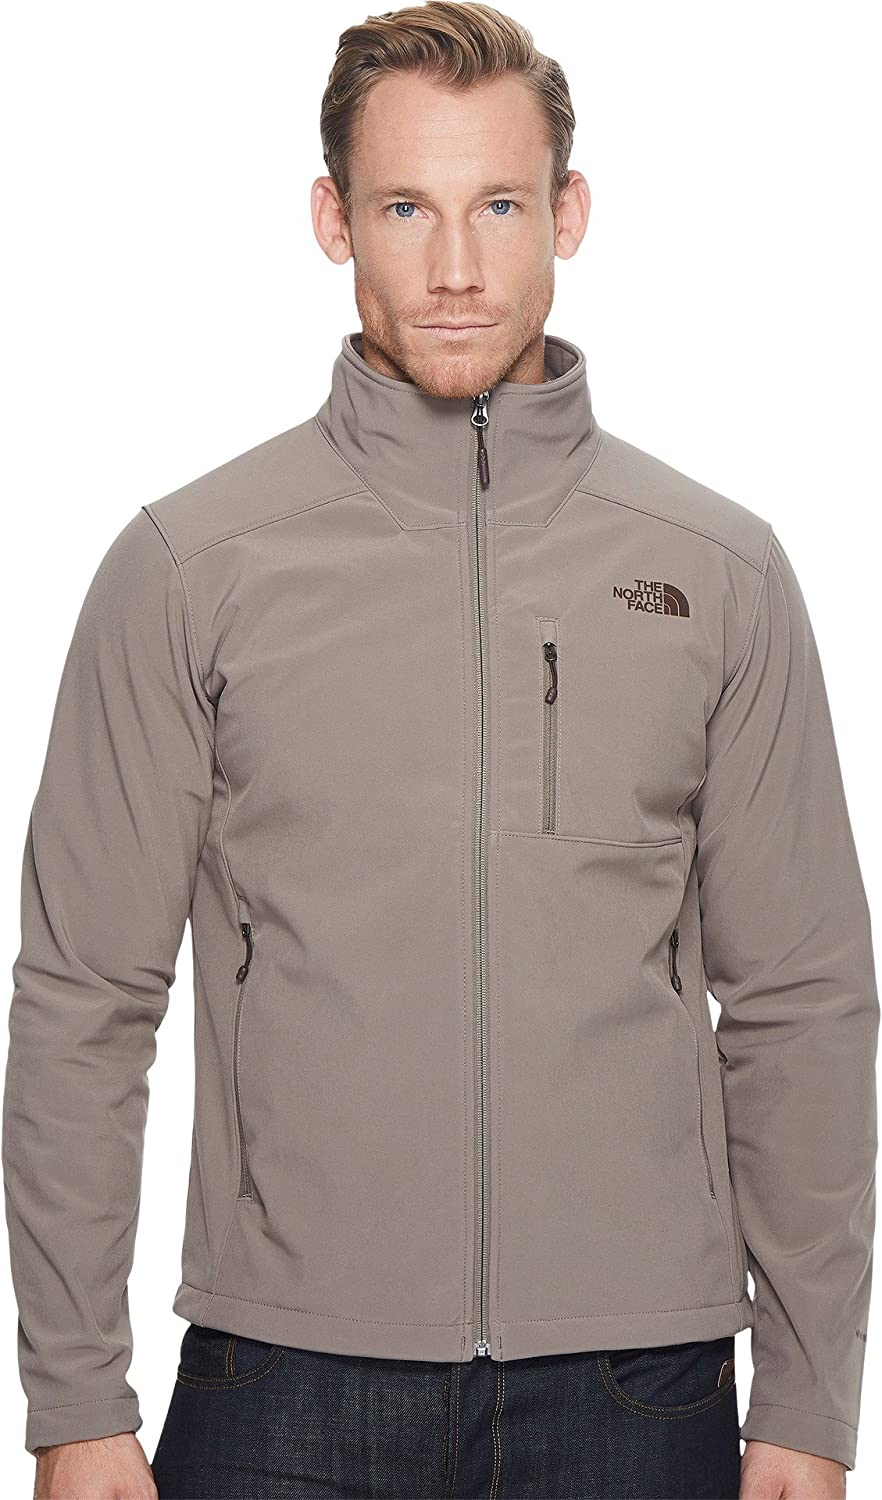 The North Face Apex Bionic Soft Shell Jacket – Men 's B01HS153Q4 Small|Falcon Brown/Falcon Brown Falcon Brown/Falcon Brown Small